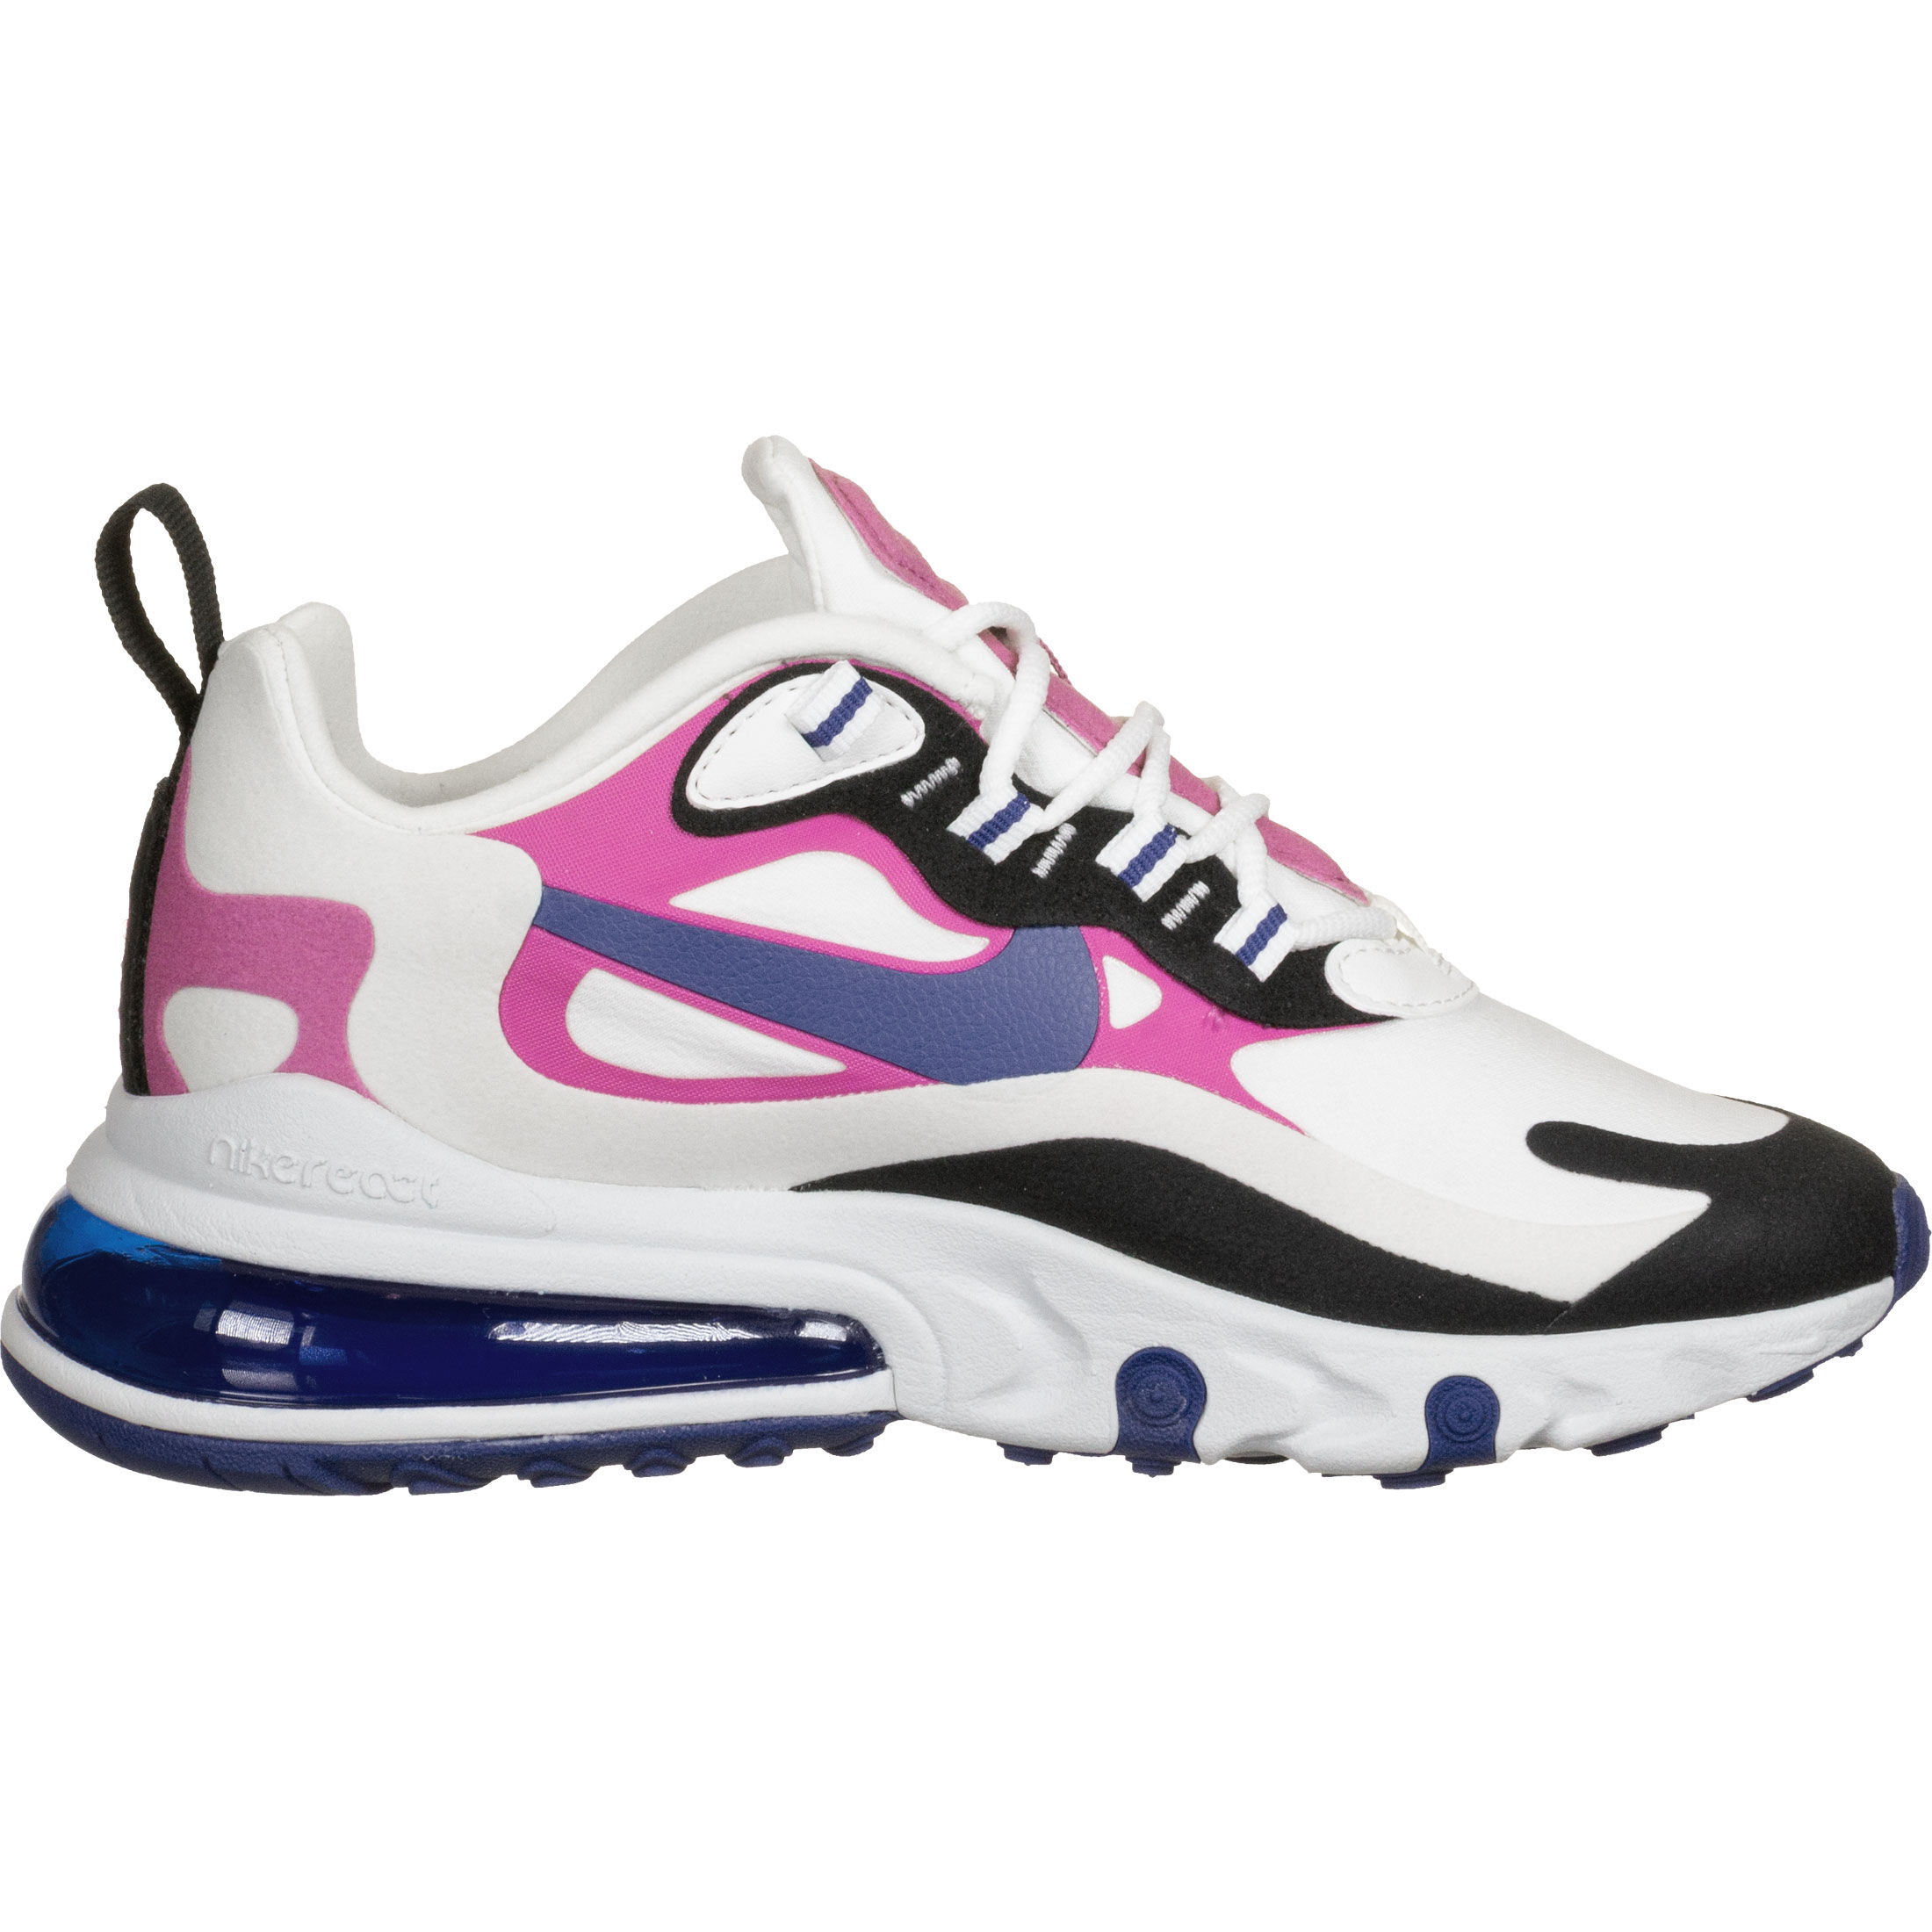 Air Max 270 React W Baskets low Femmes chez Stylefile